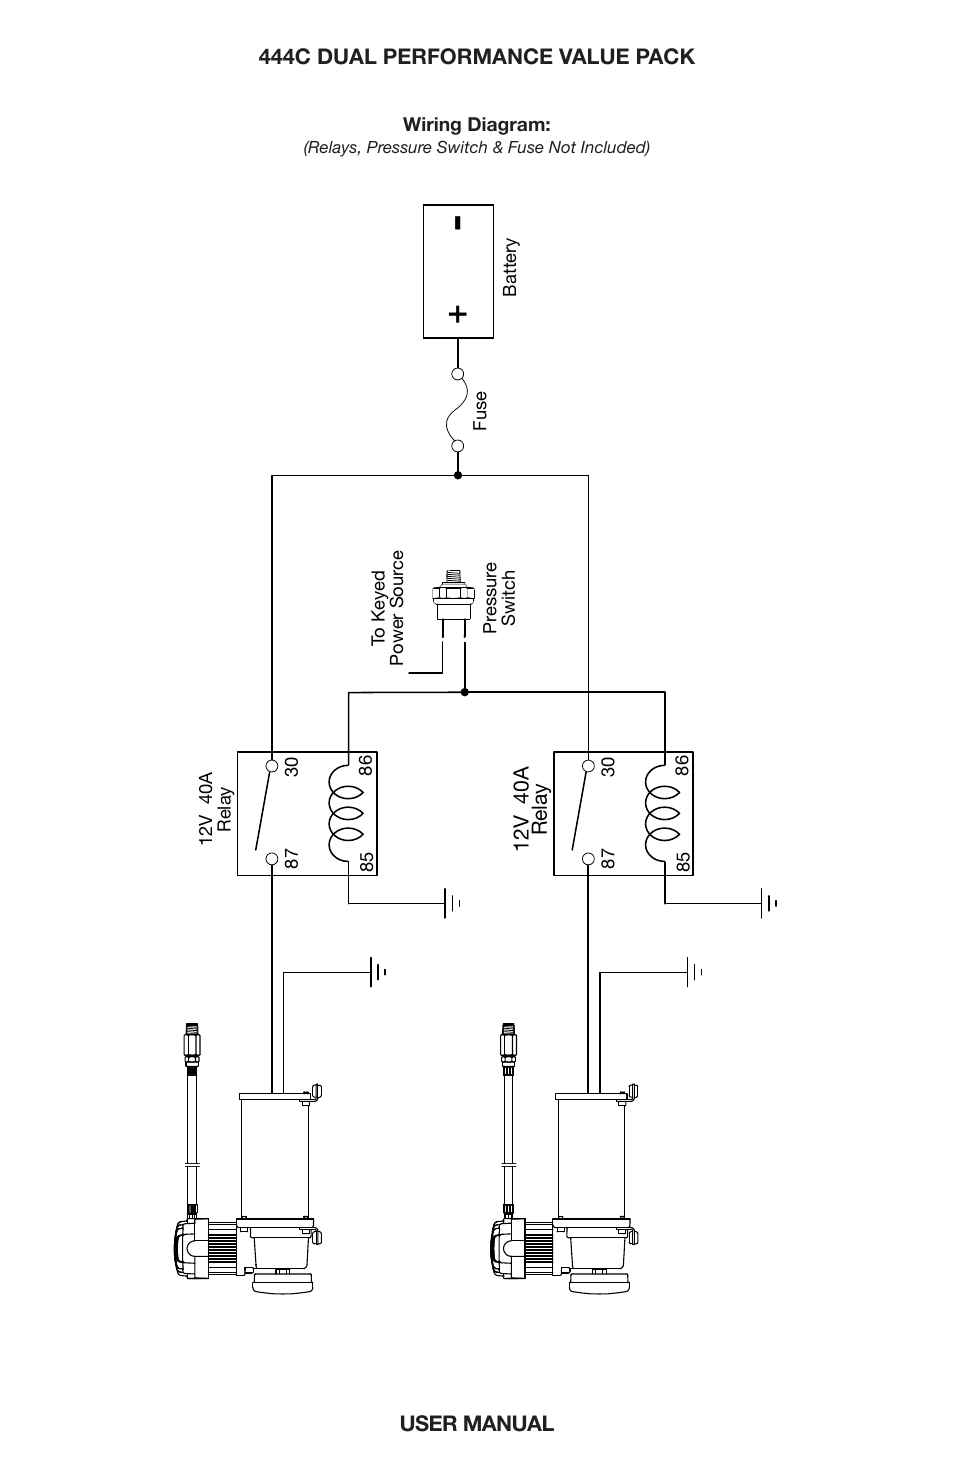 viair 444c dual page7 dual \u201cc\u201d model compressor wiring diagram viair 444c dual user viair pressure switch wiring diagram at aneh.co